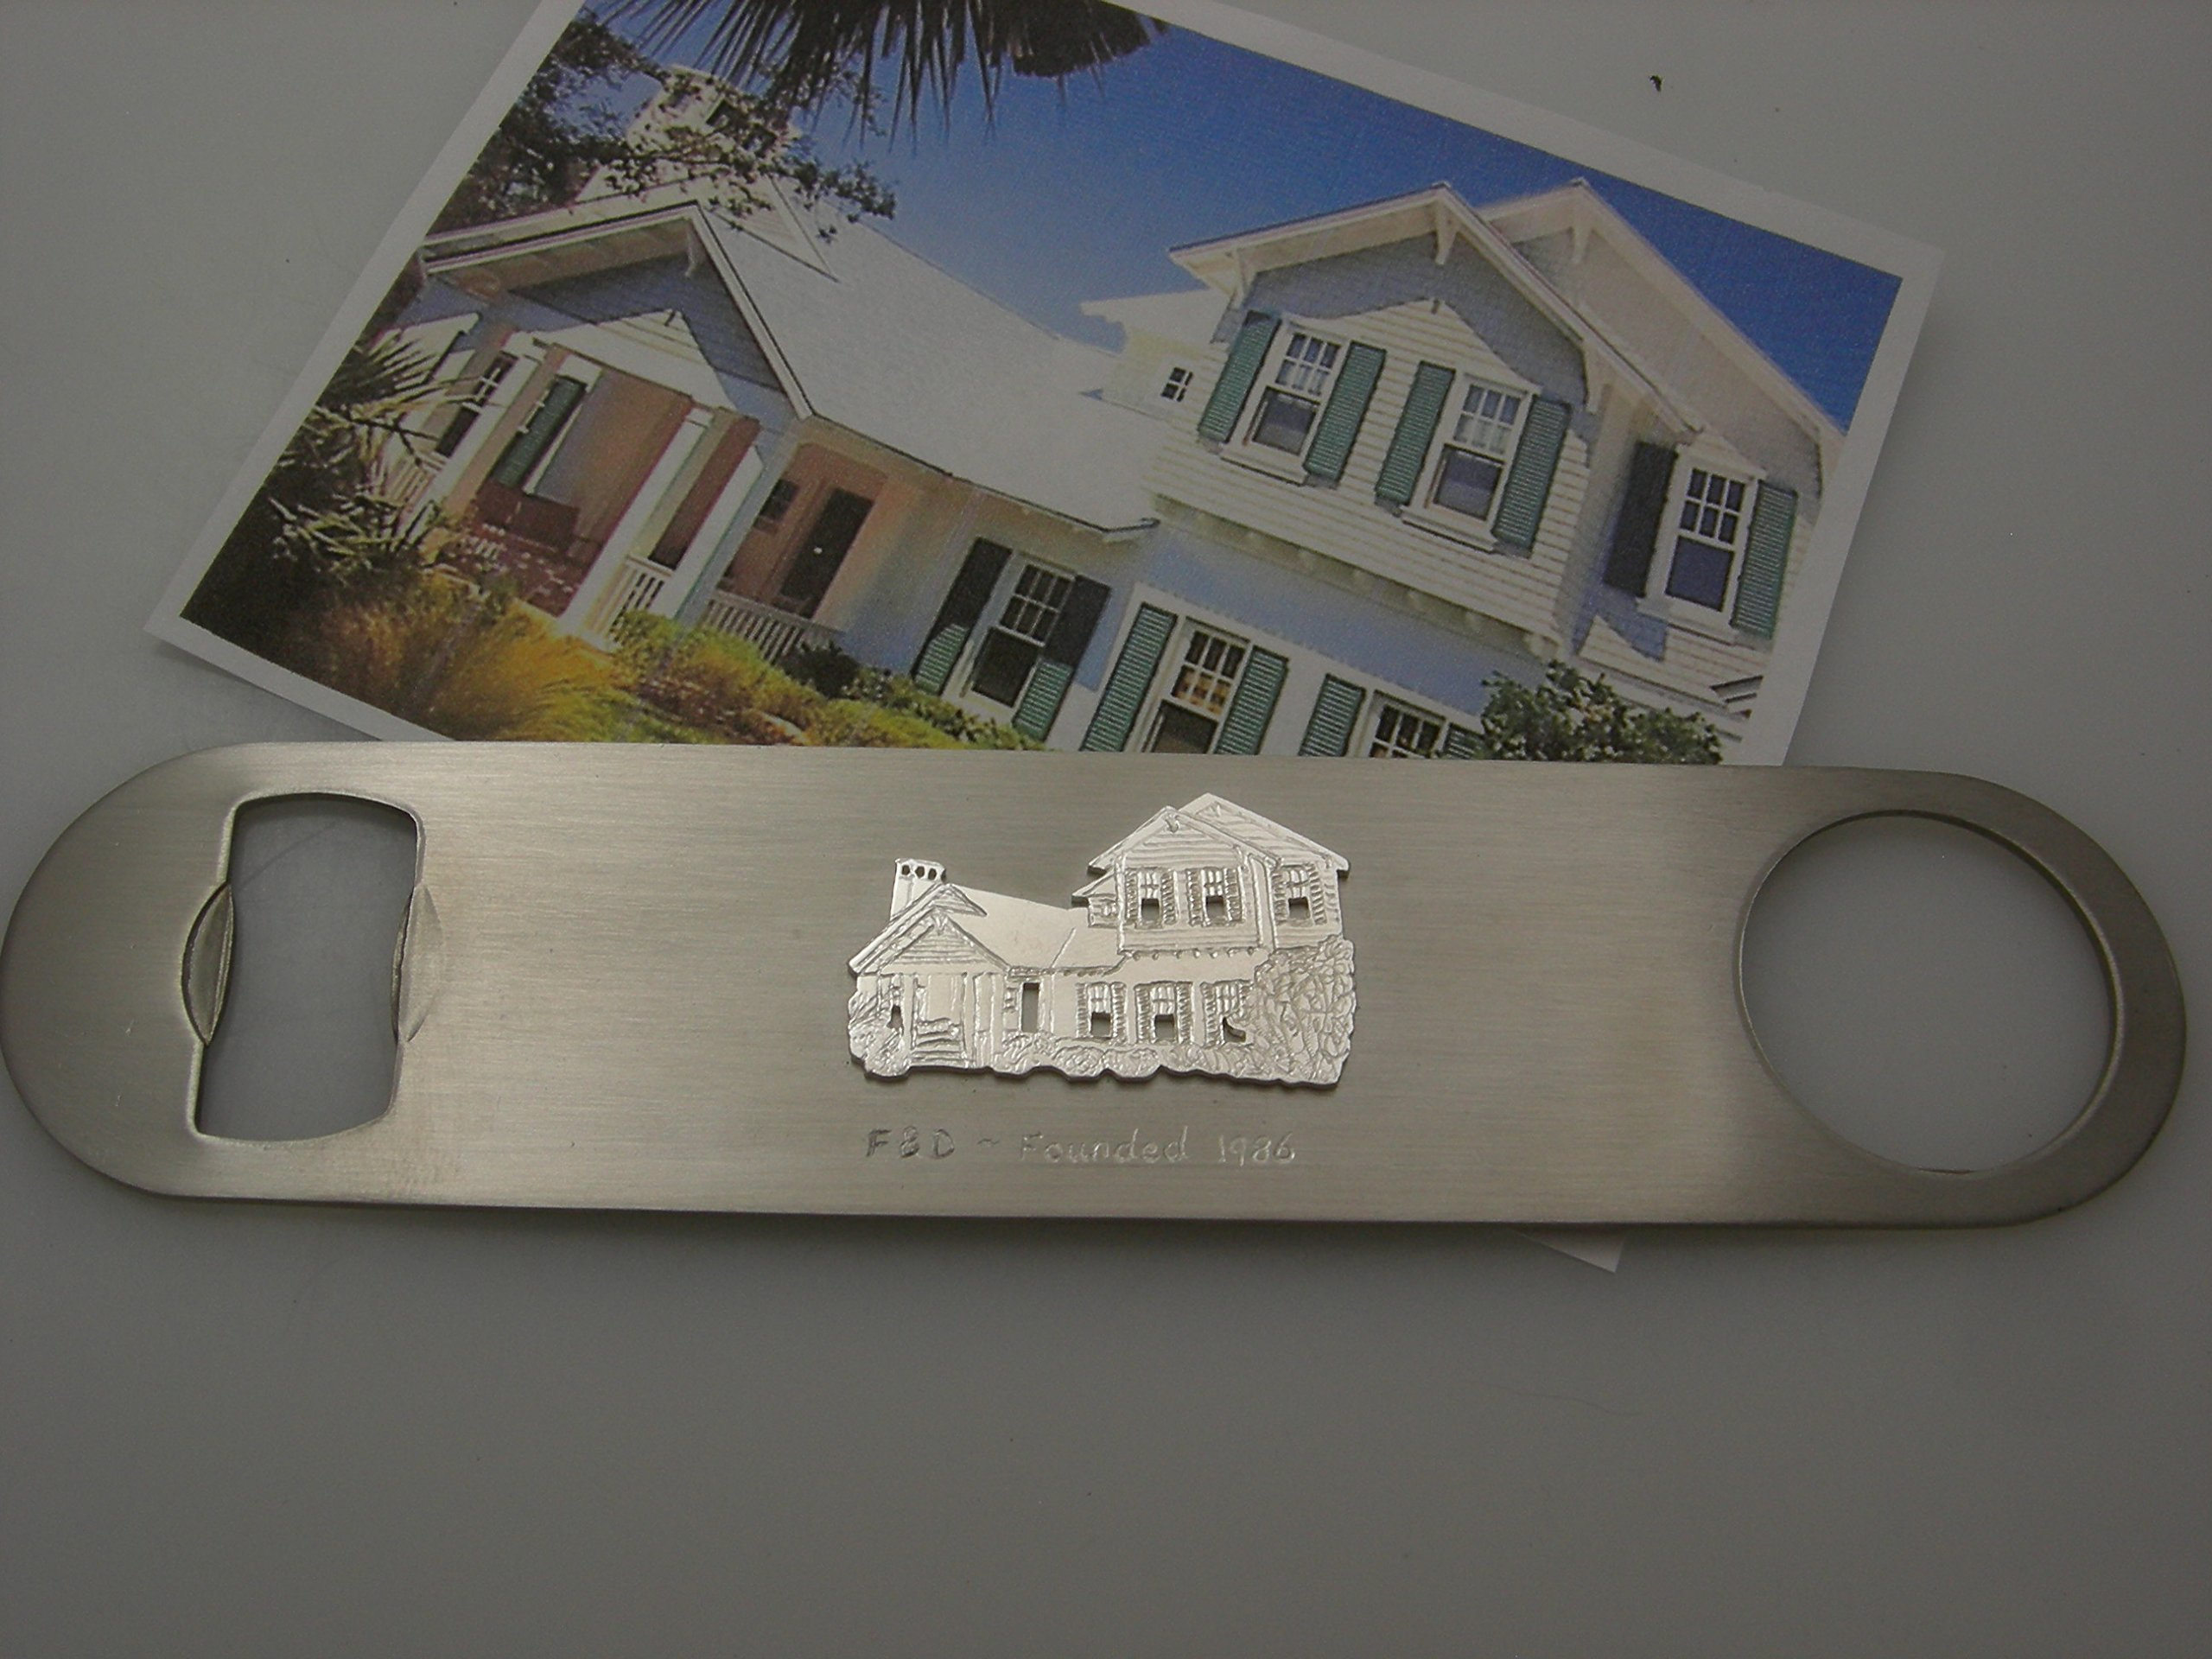 Custom Bottle Opener with Artwork- Great Gift for Dad- Personalized Gift with Kid's Artwork